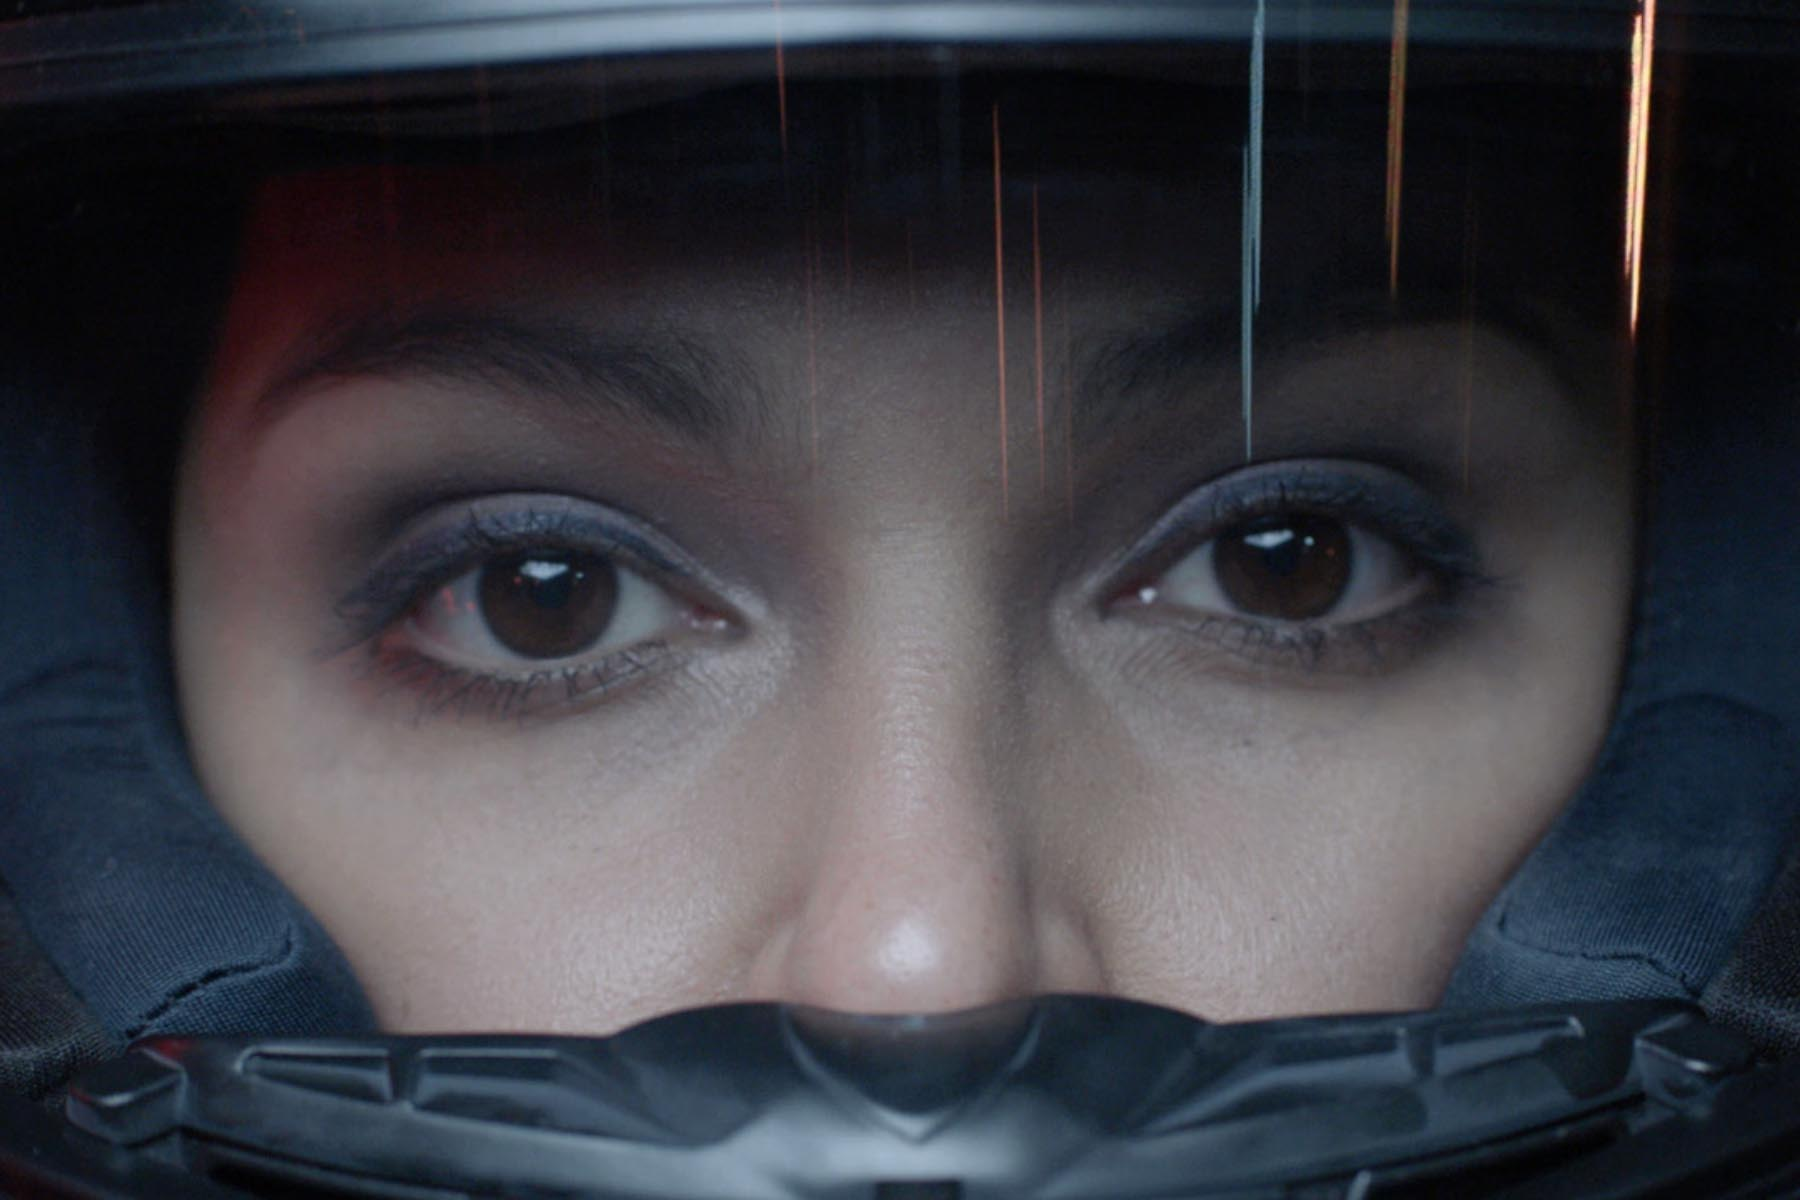 A female racing driver.